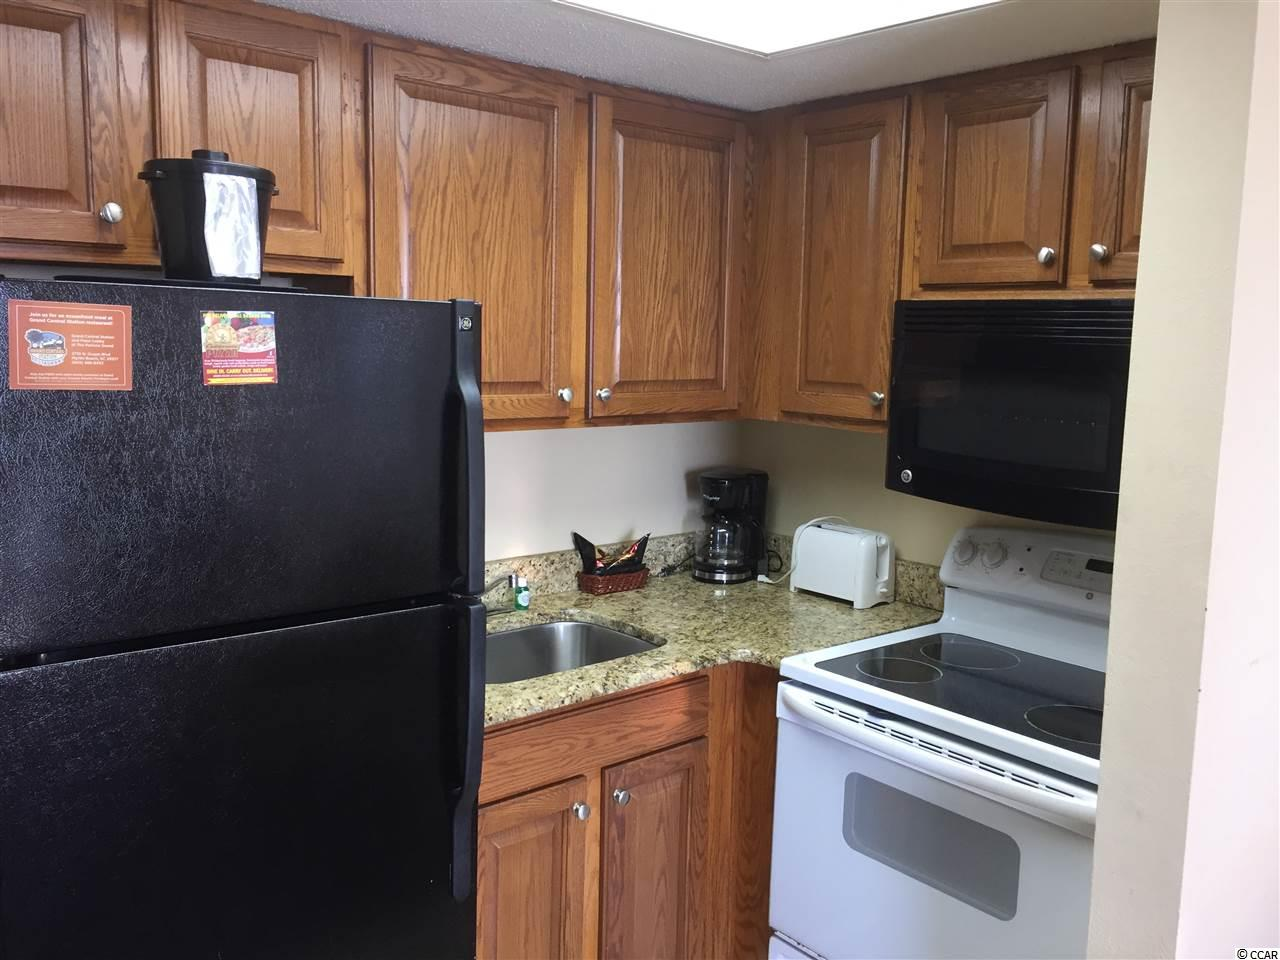 Contact your Realtor for this 1 bedroom condo for sale at  Patricia Grand I